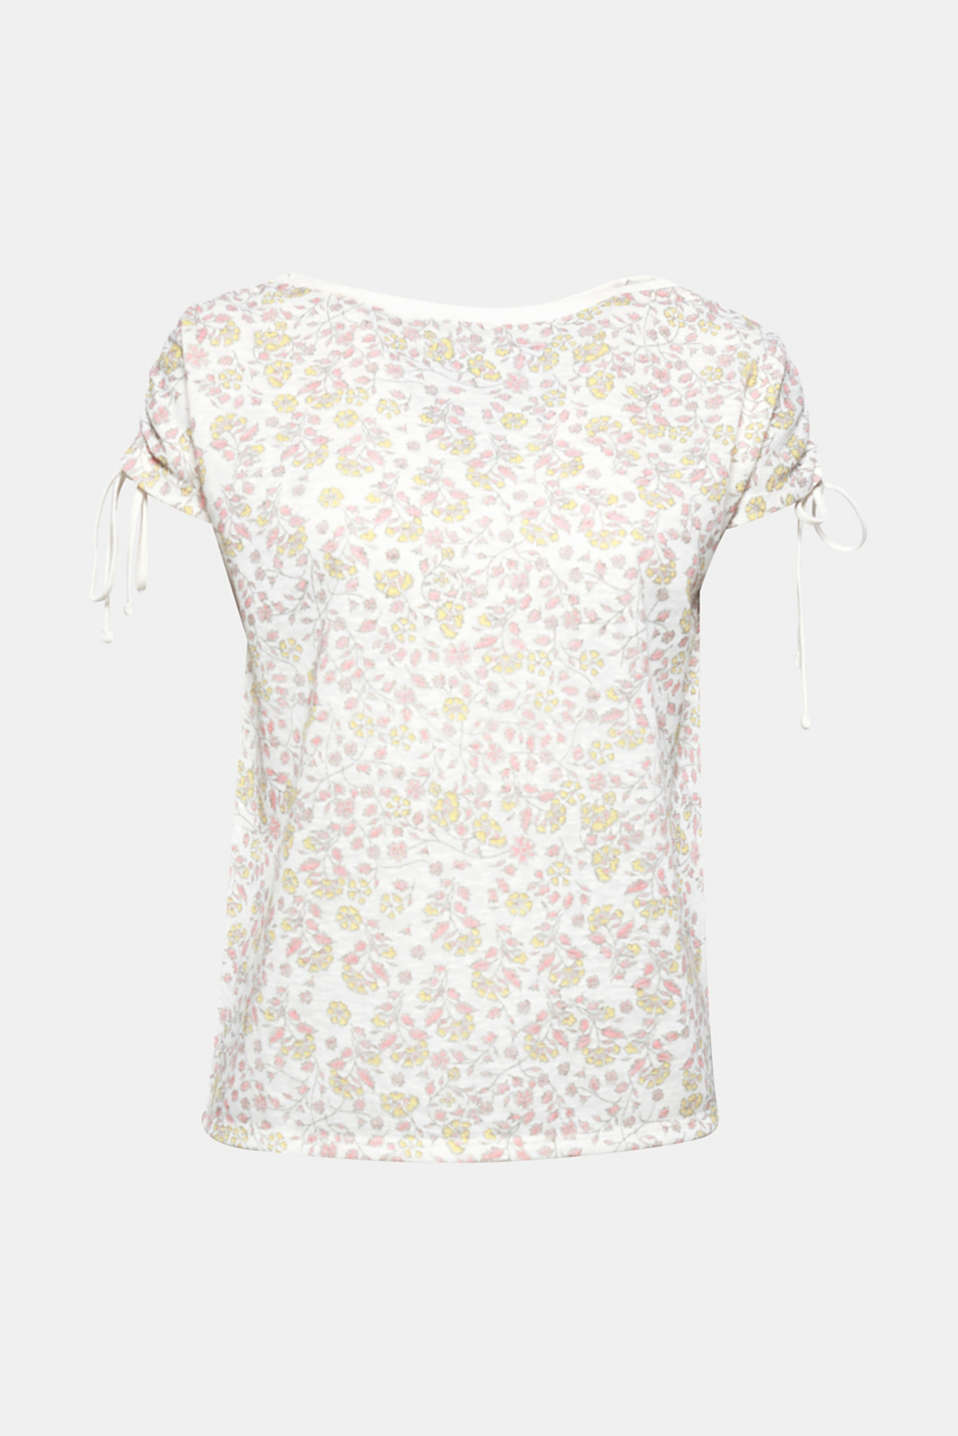 Pretty top in cool blended linen: various prints and gathered shoulders give this style its spring flair!